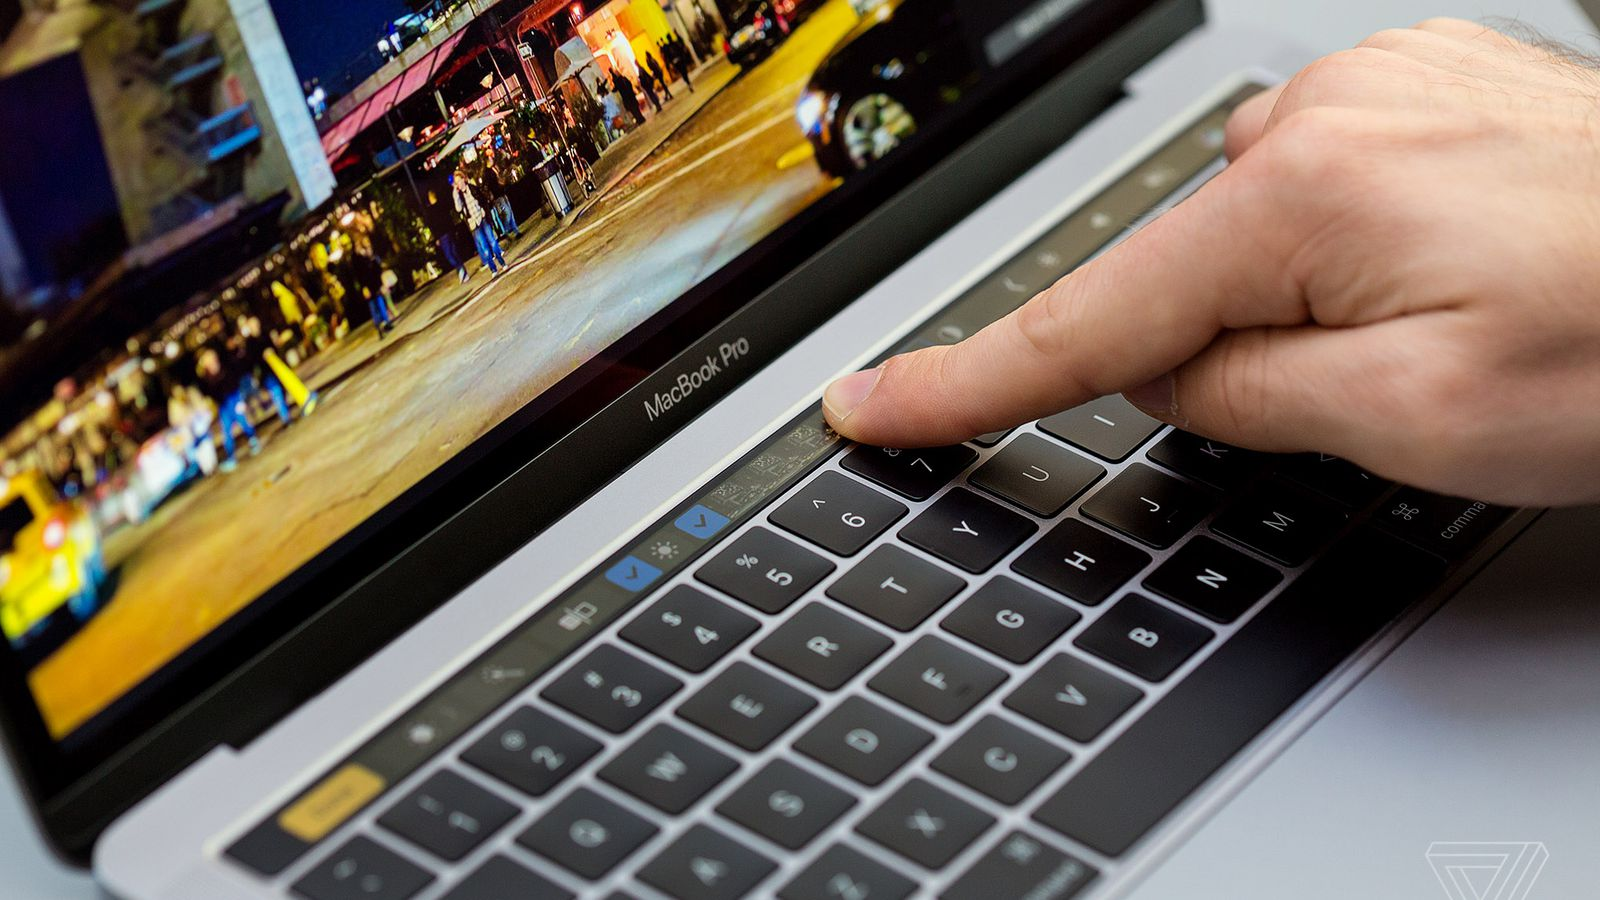 Apple reportedly failed to make a longer-lasting MacBook Pro battery